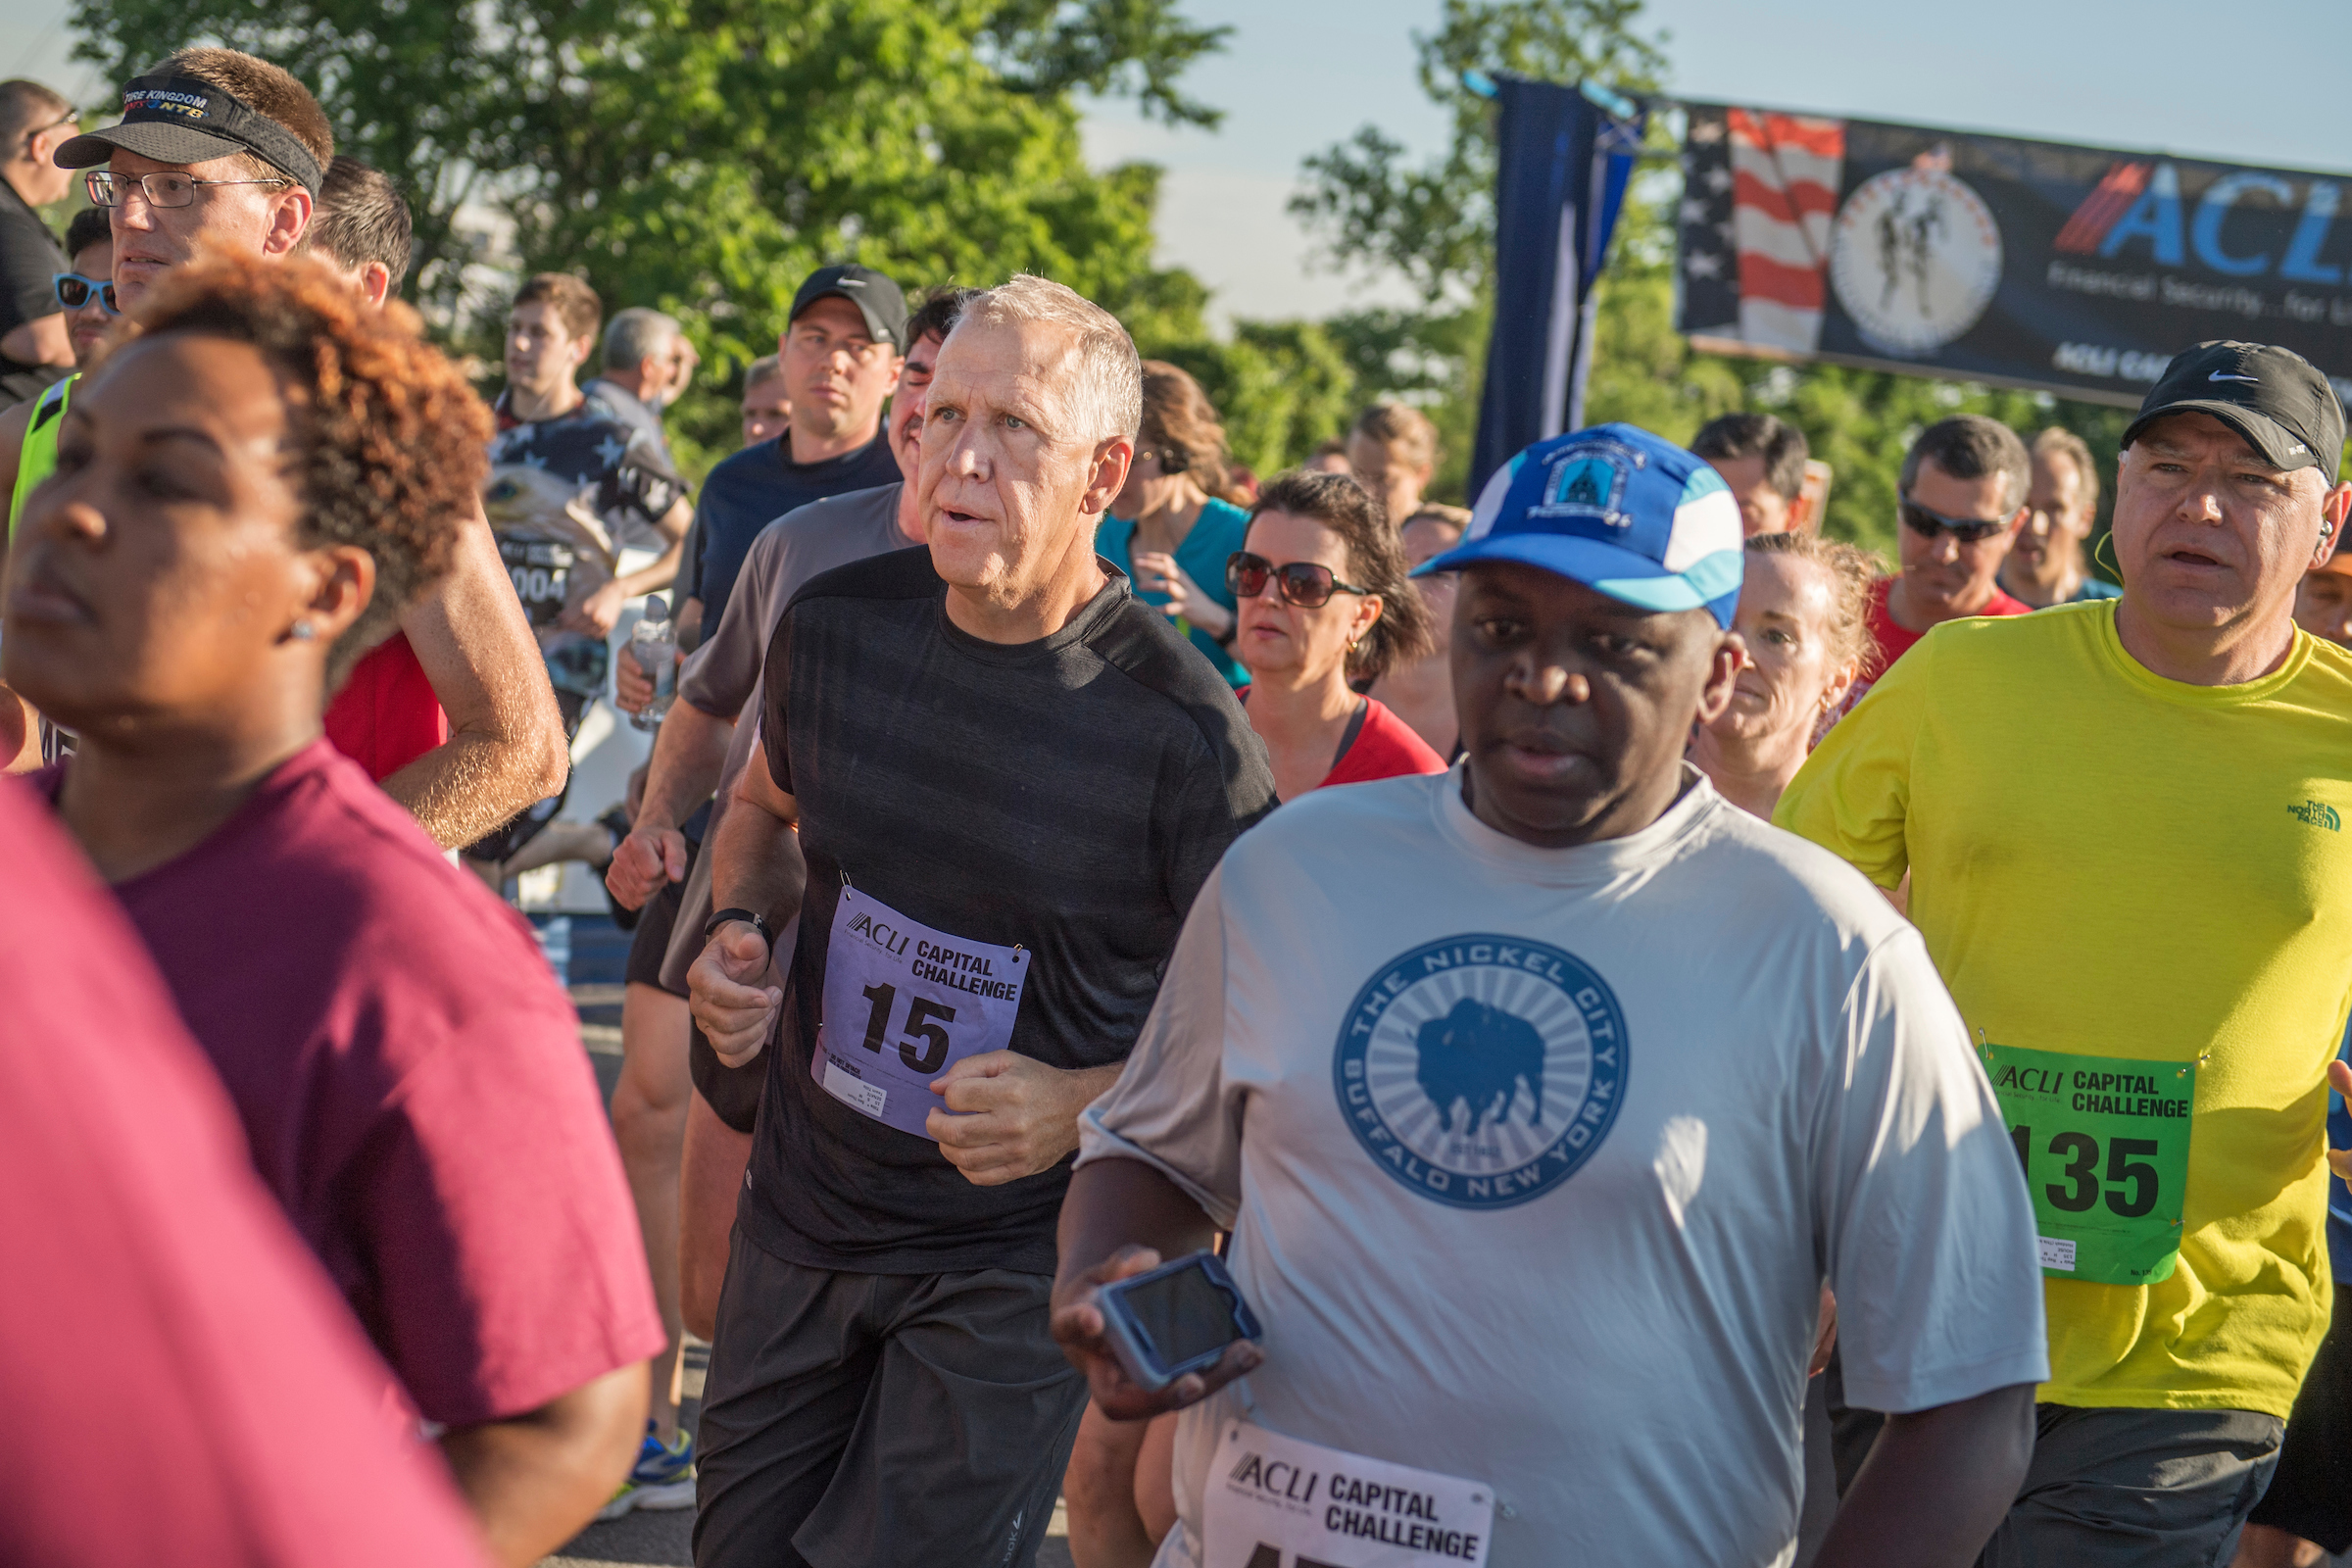 UNITED STATES - MAY 17: Sen. Thom Tillis, R-N.C., black shirt, and Rep. Tim Walz, D-Minn., yellow shirt, run in the ACLI Capital Challenge 3 Mile Team Race in Anacostia Park, May 17, 2017. Tillis reportedly collapsed later in the race. (Photo By Tom Williams/CQ Roll Call)